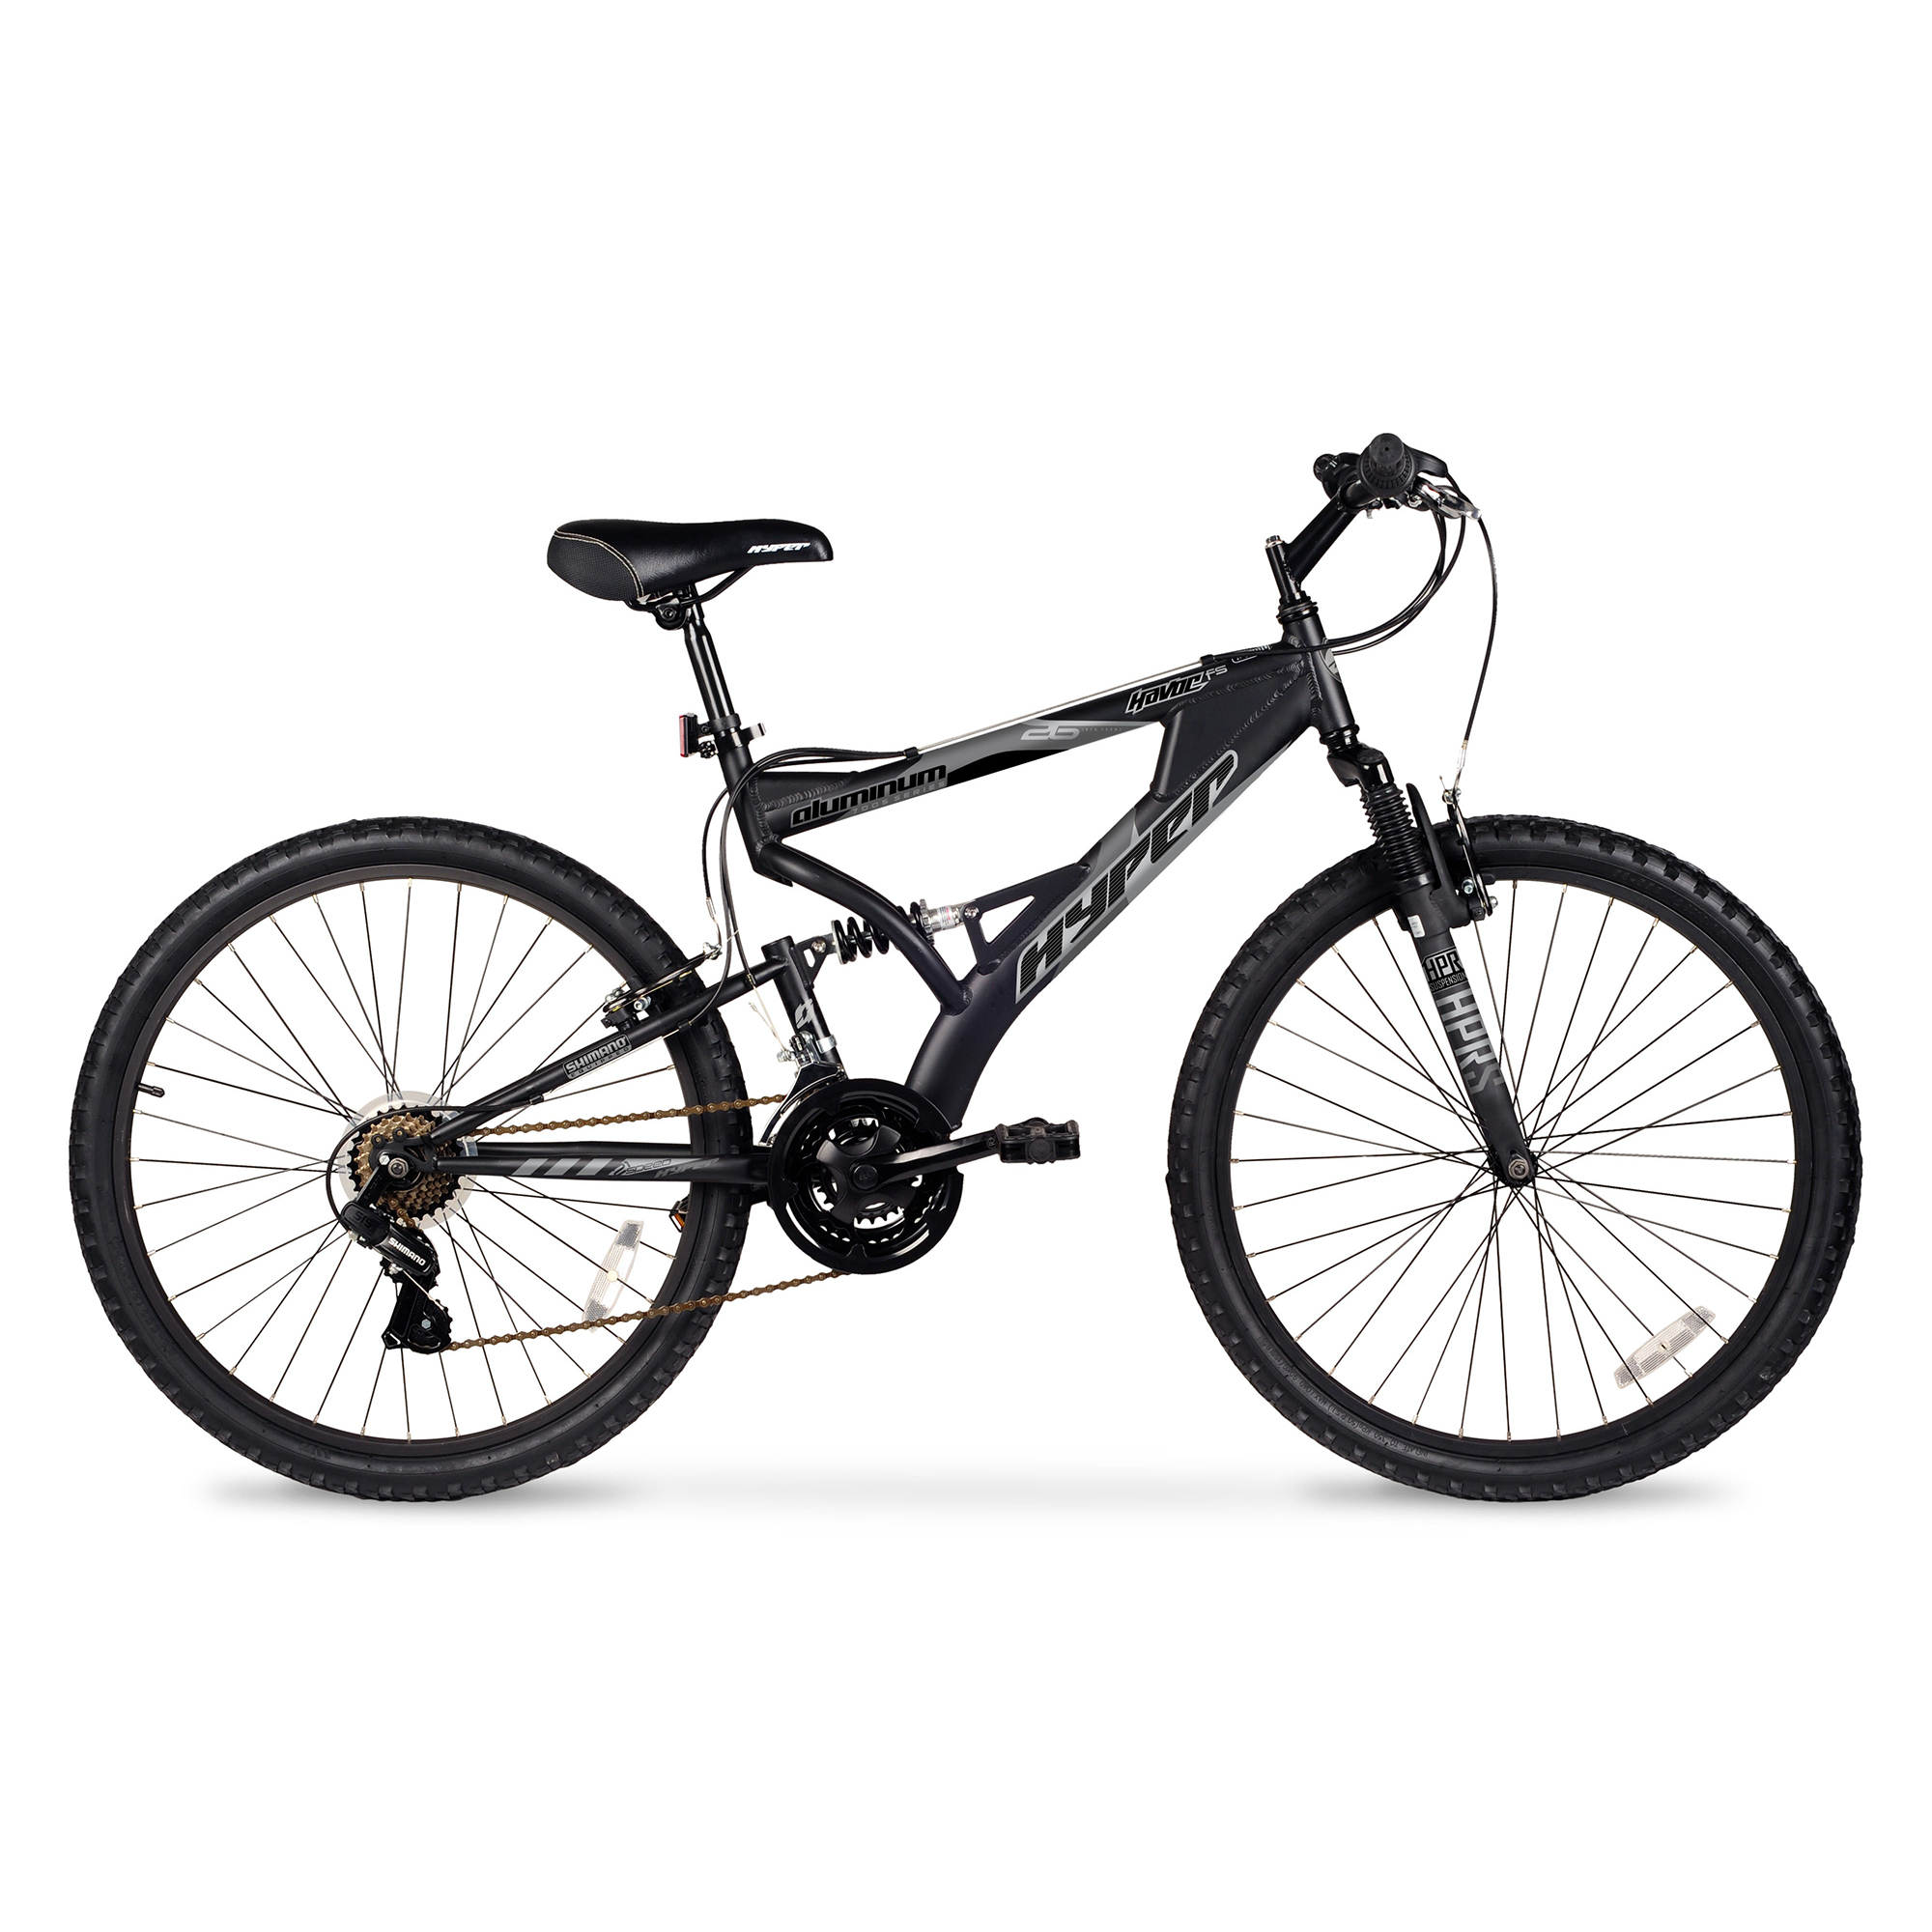 "HYPER 26"" Havoc Men's Mountain Bike, Black"